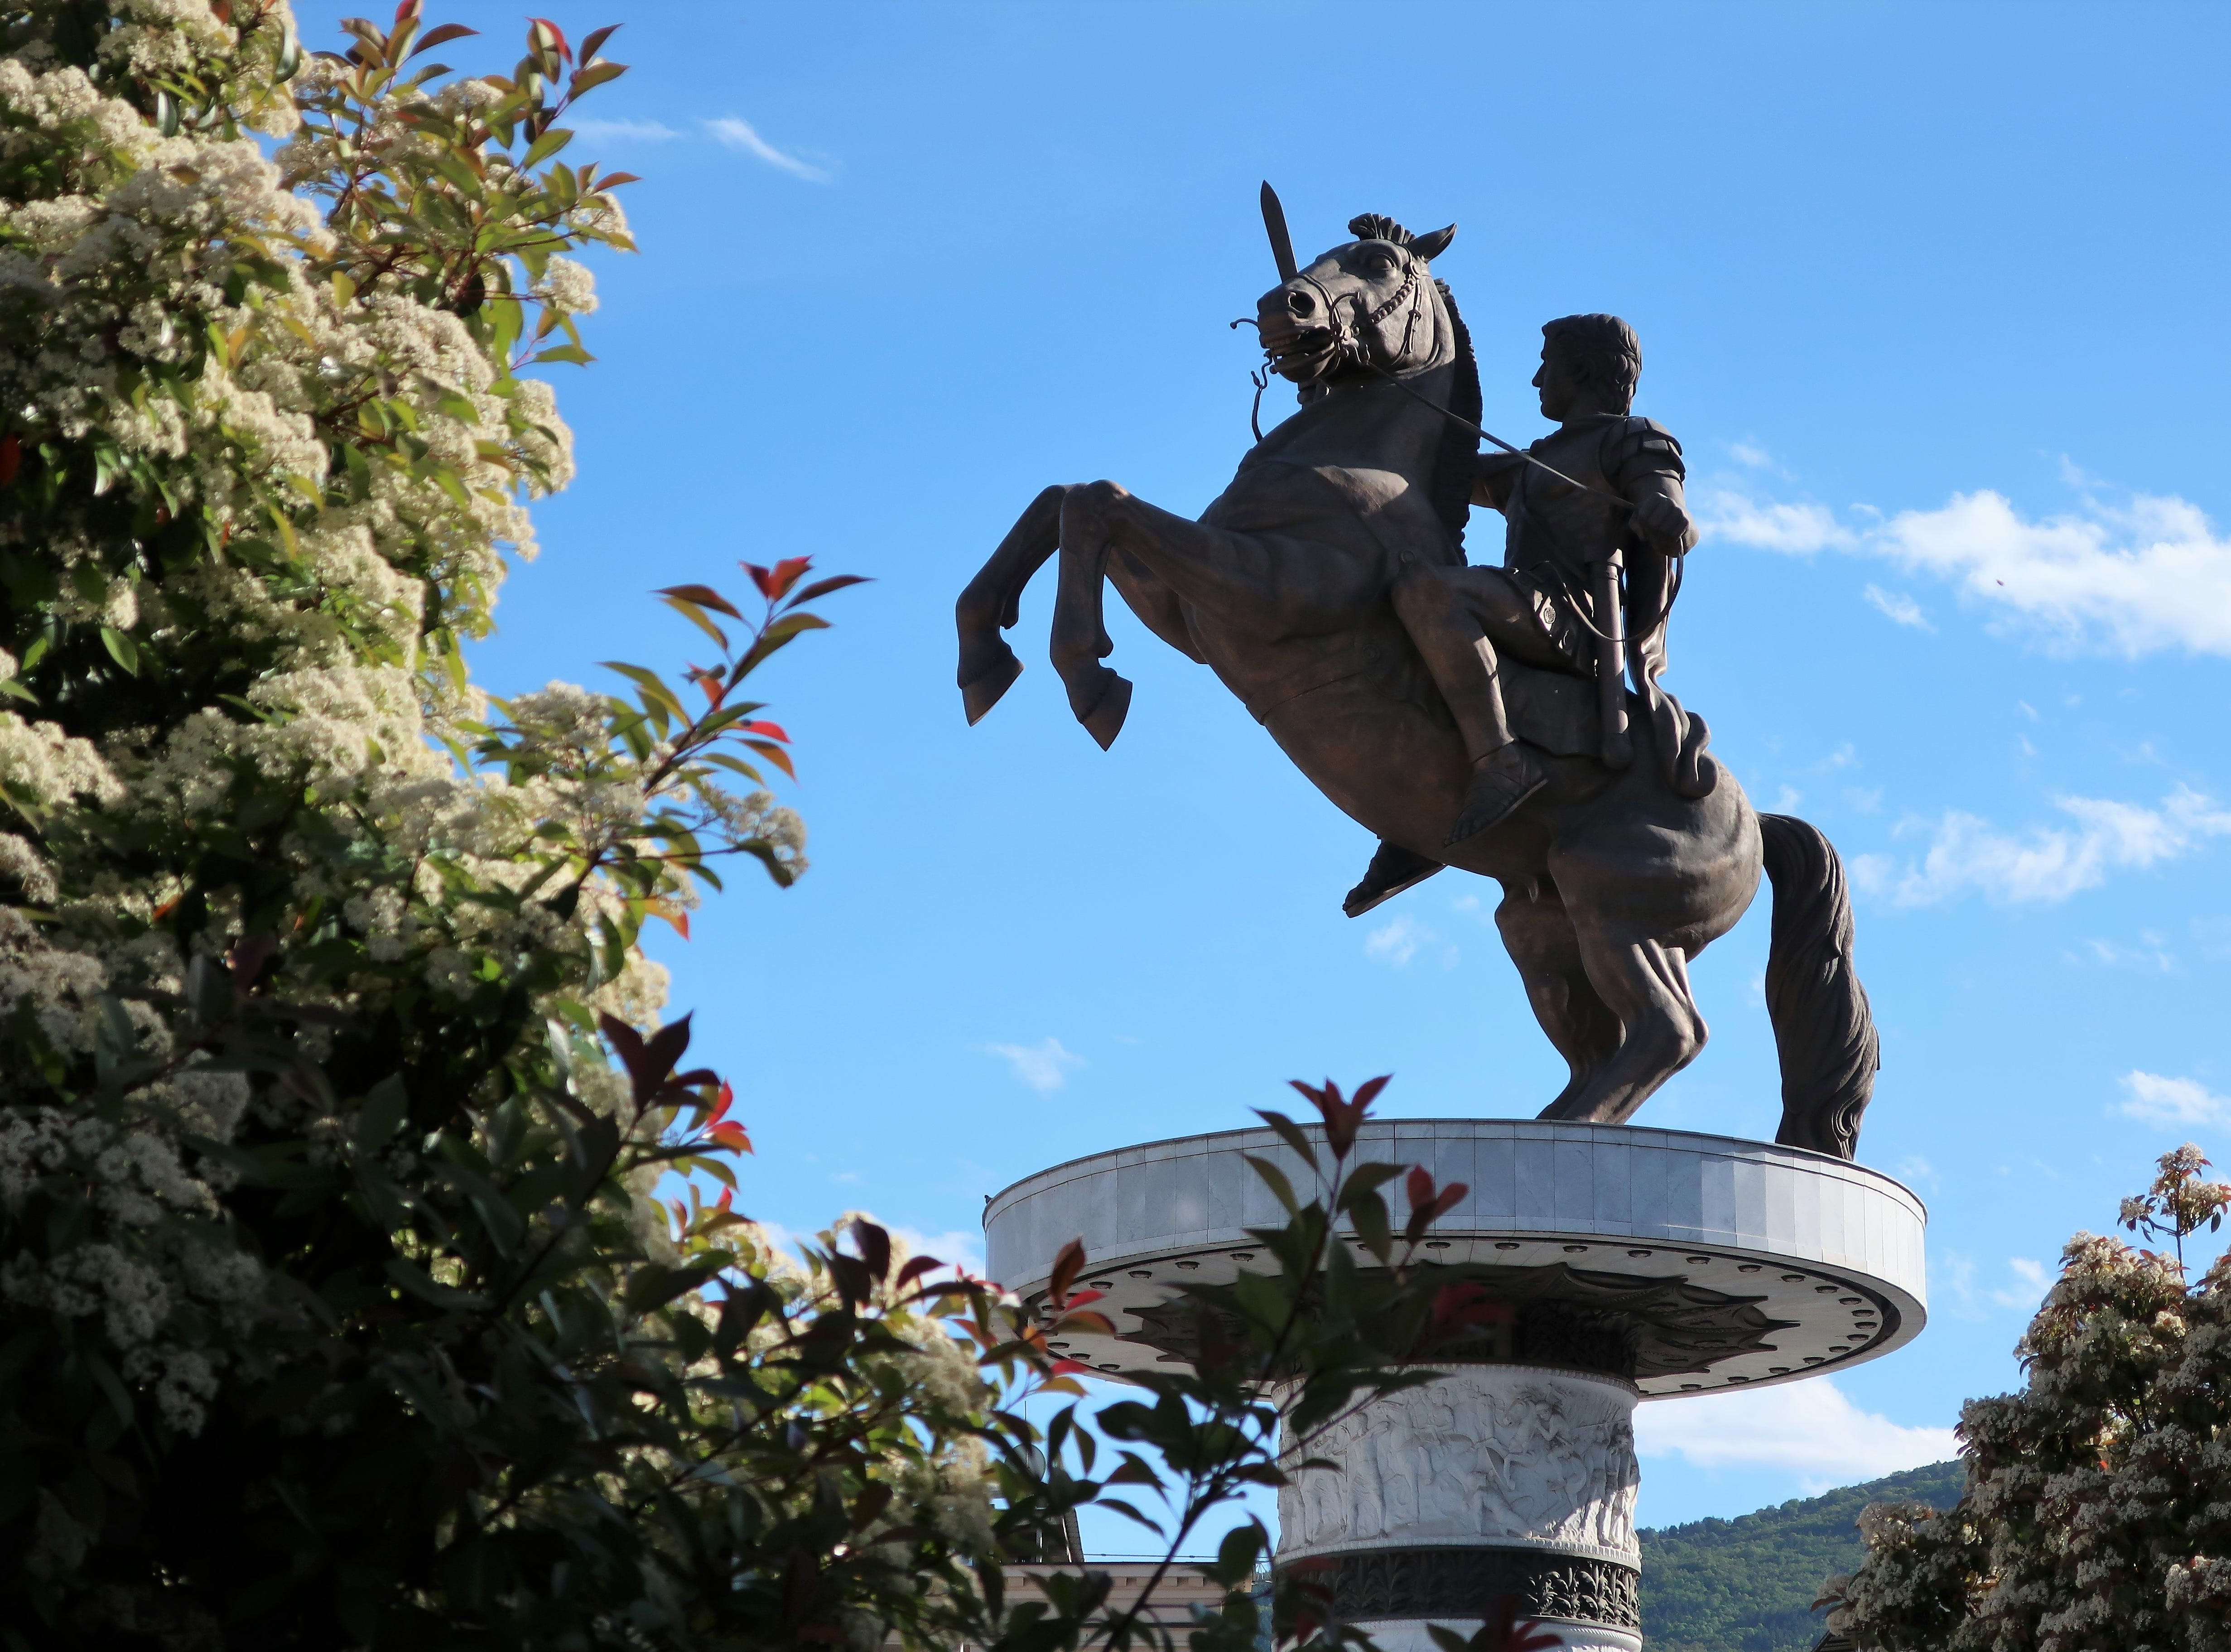 The controversial statue of Alexander the Great rides high over downtown Skopje, North Macedonia.